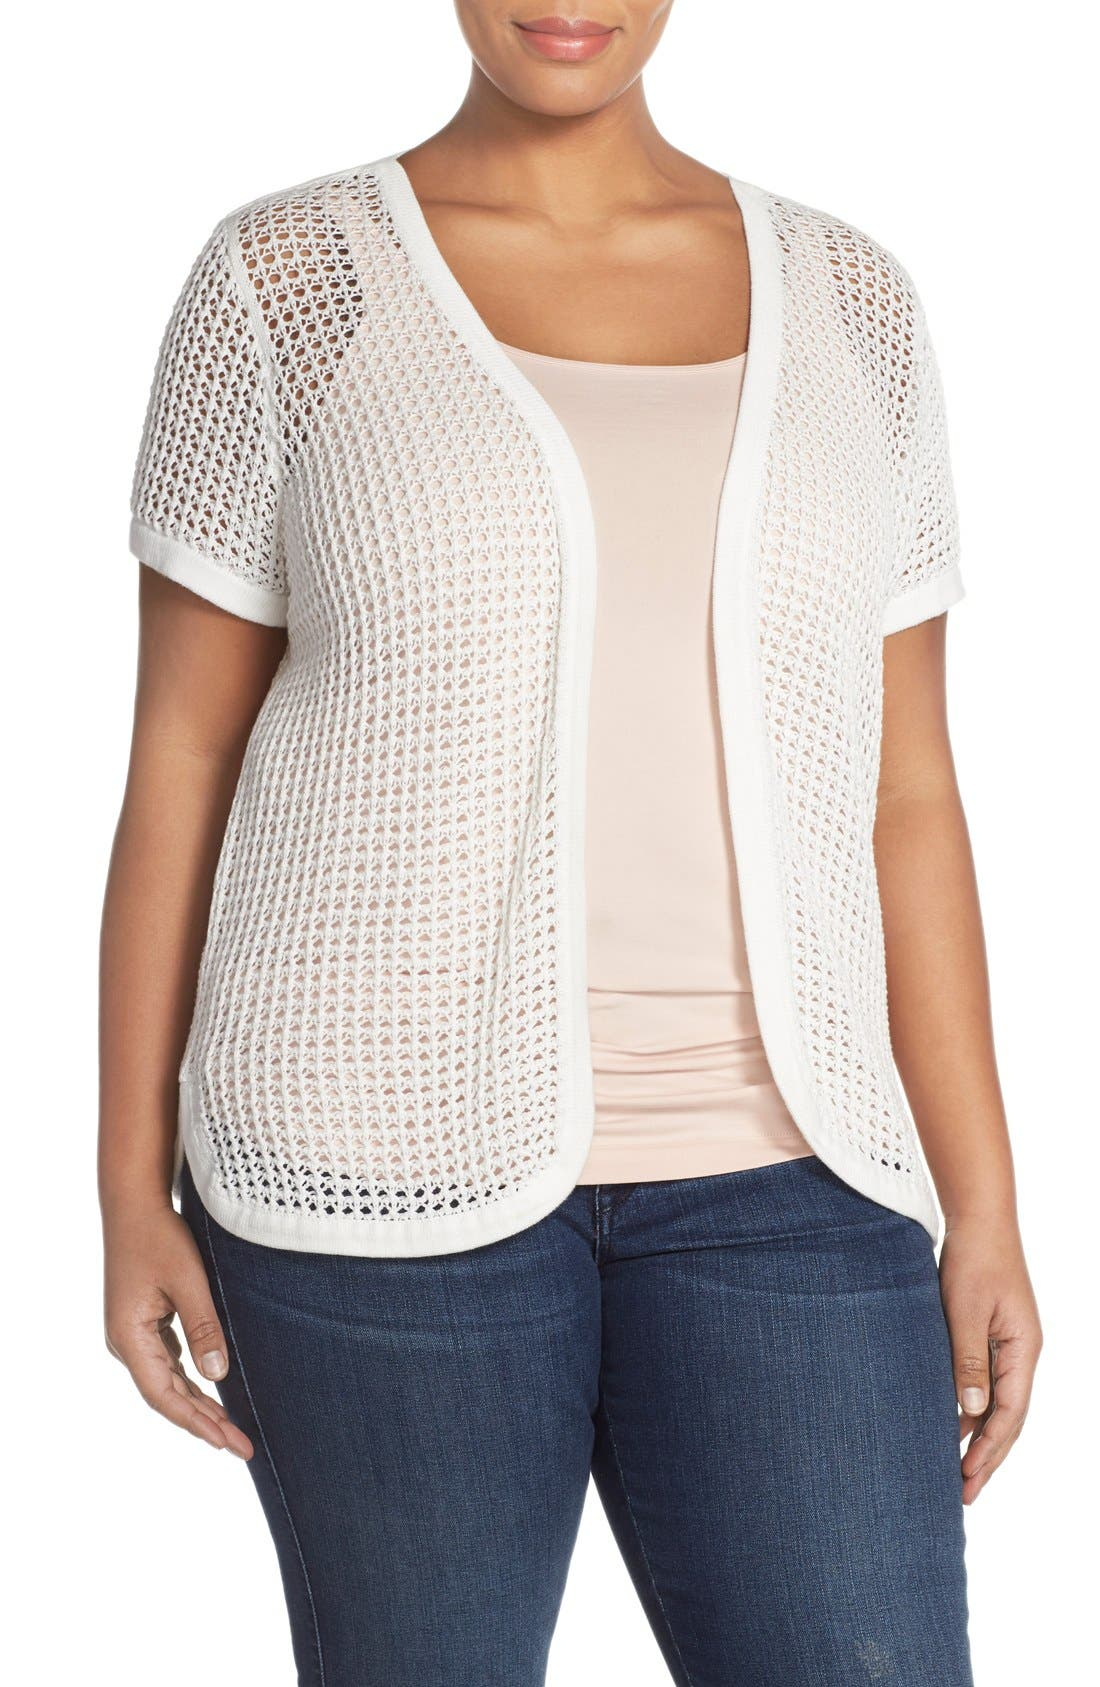 Alternate Image 1 Selected - Vince Camuto Open Stitch Cardigan (Plus Size)